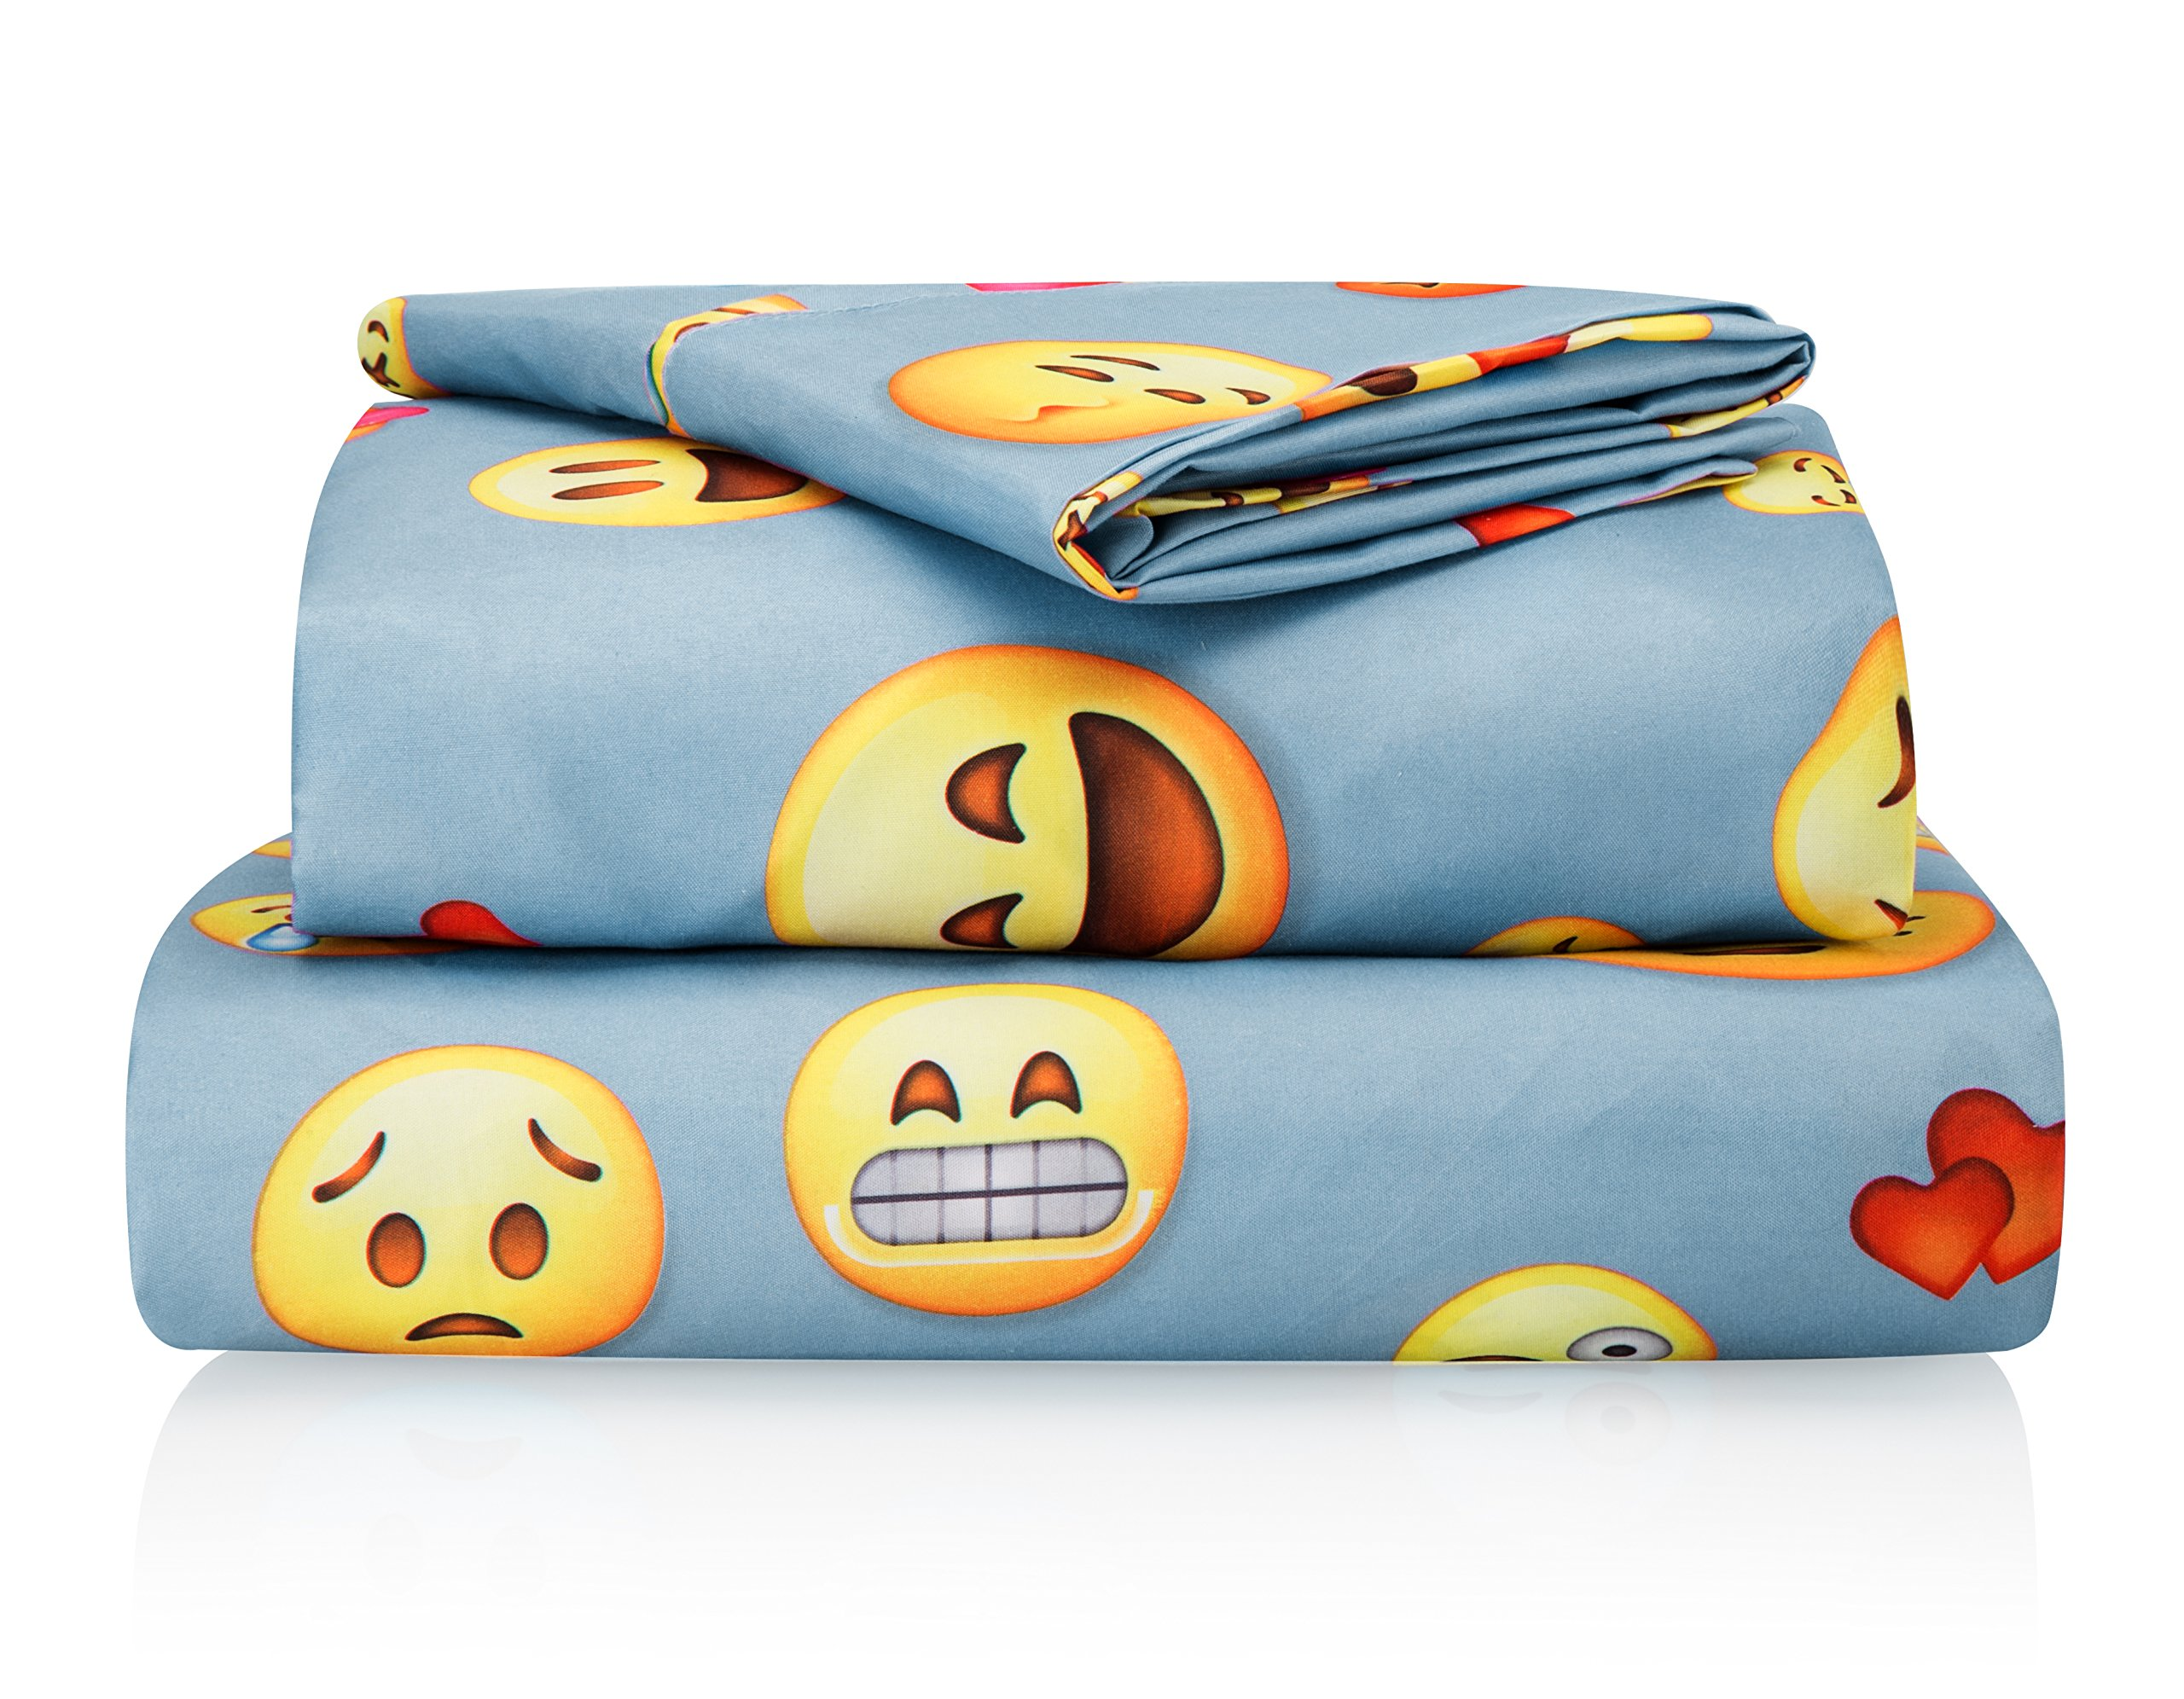 Fabugears Chital Emoji Sheet Set - Kids' Sheets - Includes a Flat Sheet, a Fitted Sheet & a Pillow Case - Super Soft Microfiber Sheet Set - Wrinkle-free Linen Cot Bed Sheets, (Cot Size)